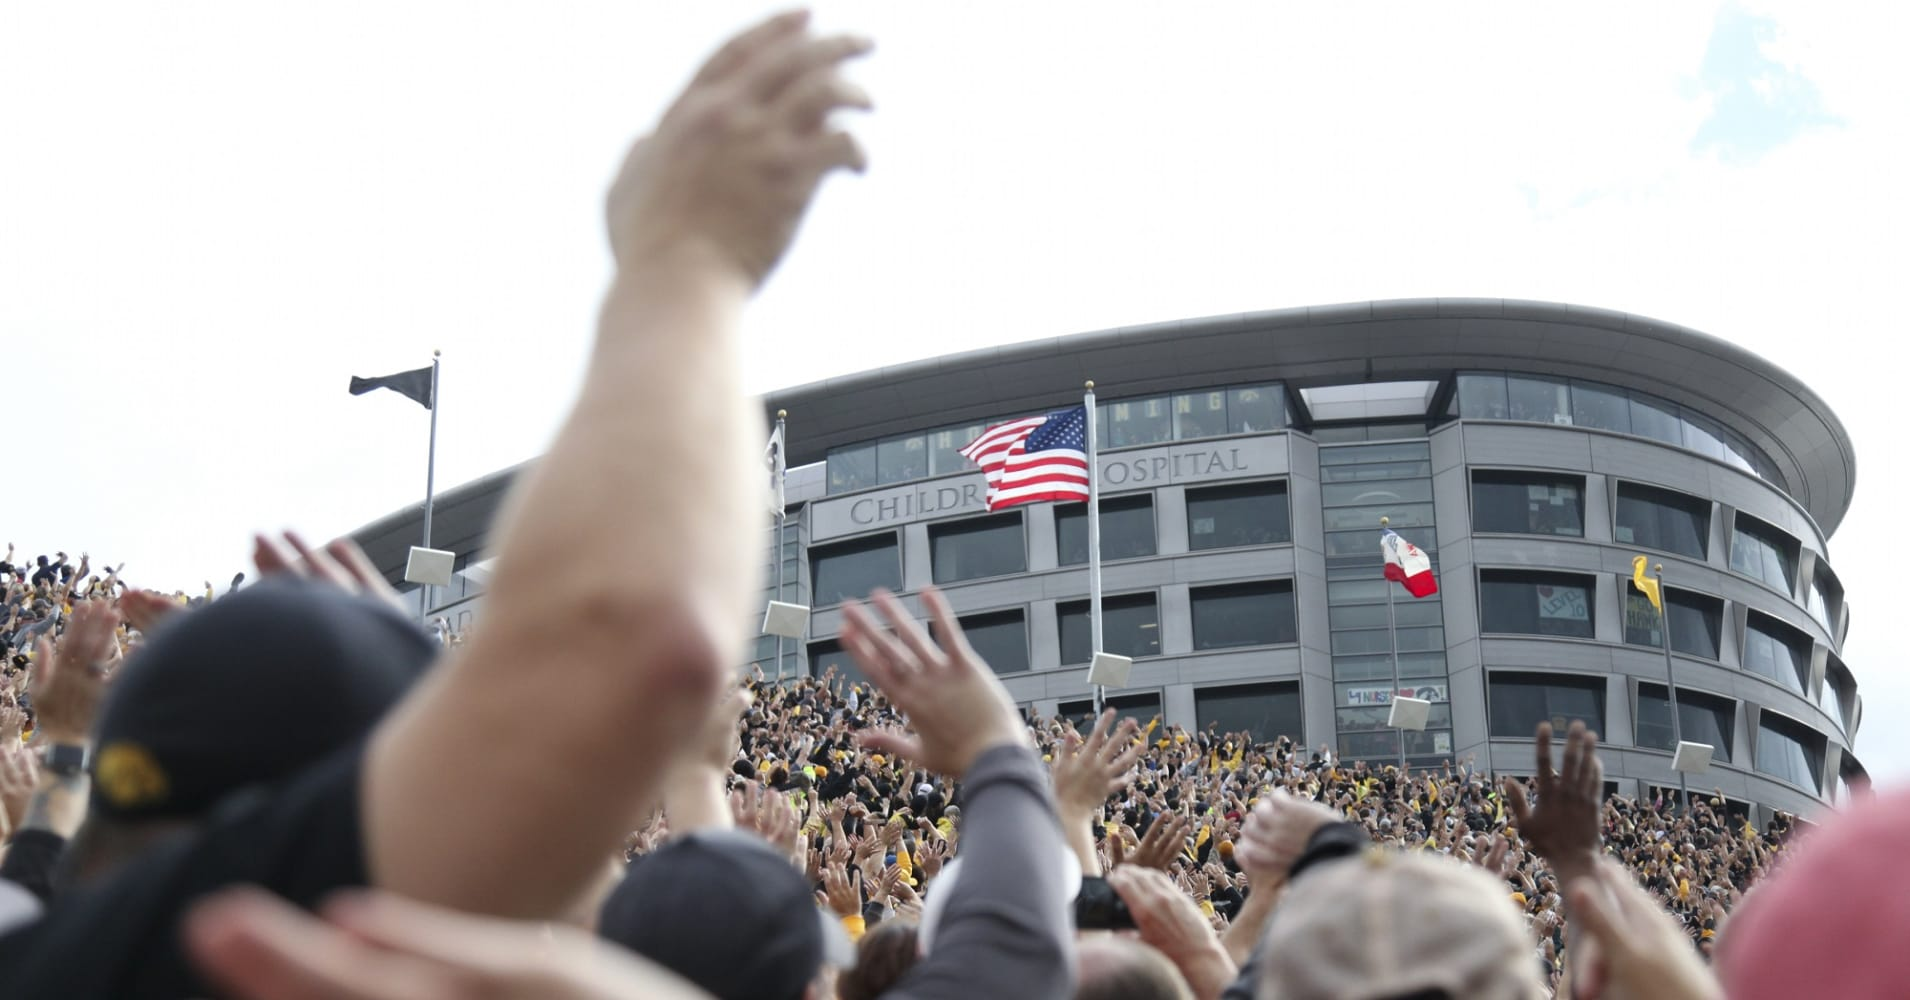 Fans wave to children at the University of Iowa Stead Family Children's Hospital after the first quarter of the Iowa football game against the Illinois Fighting Illini on October 7, 2017 at Kinnick Stadium in Iowa City, Iowa.